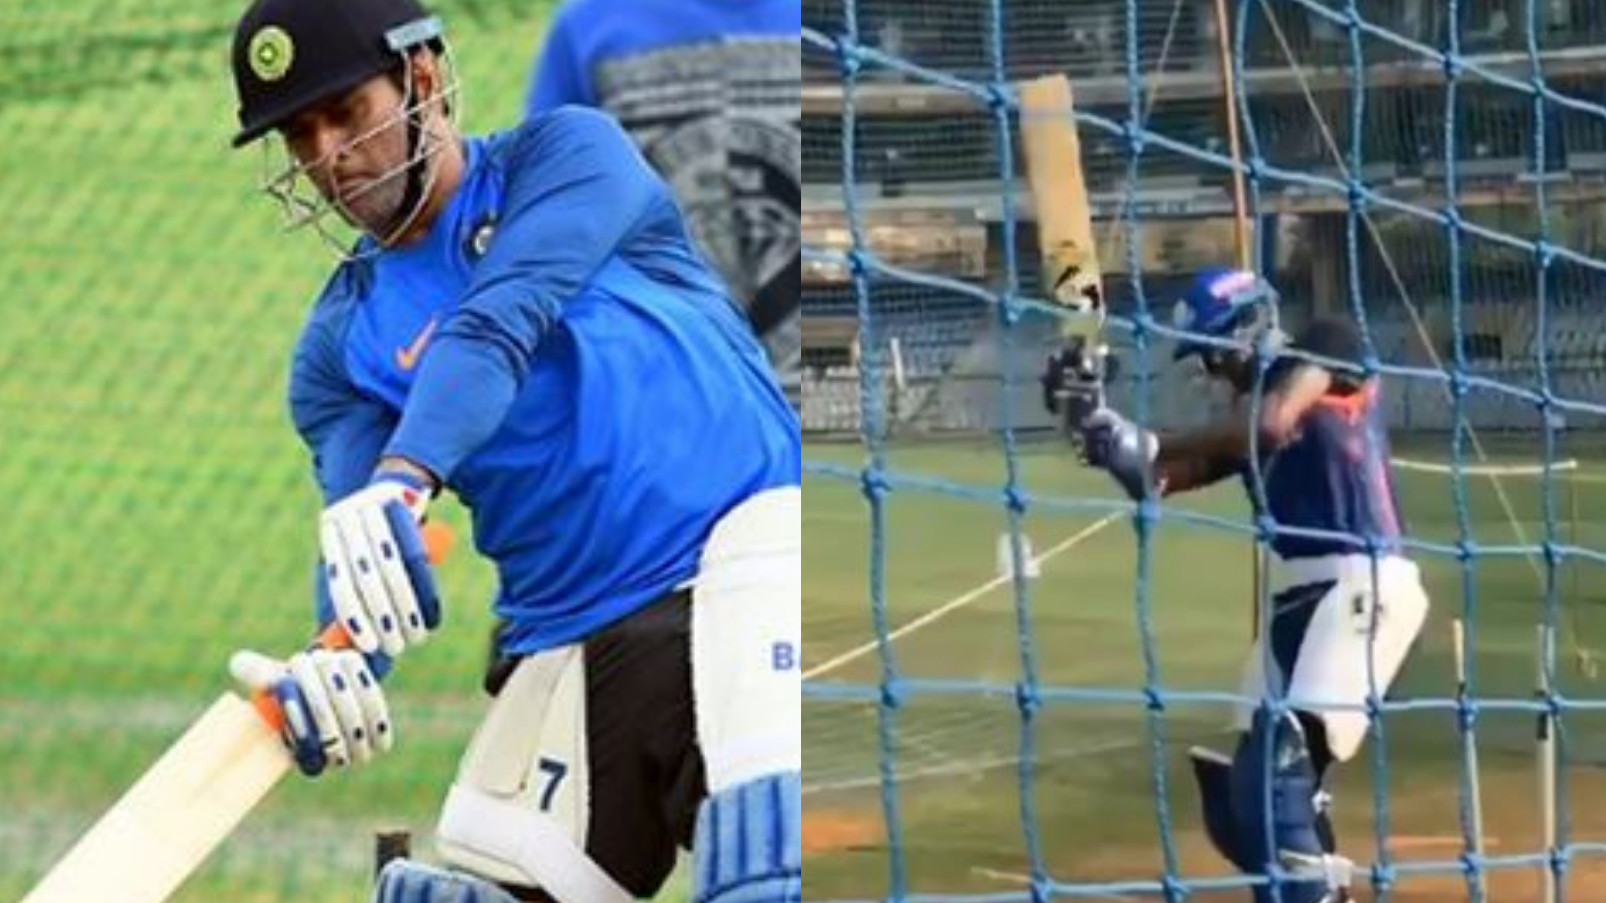 IPL 2019: WATCH- Hardik Pandya tries to copy MS Dhoni's helicopter shot during net session